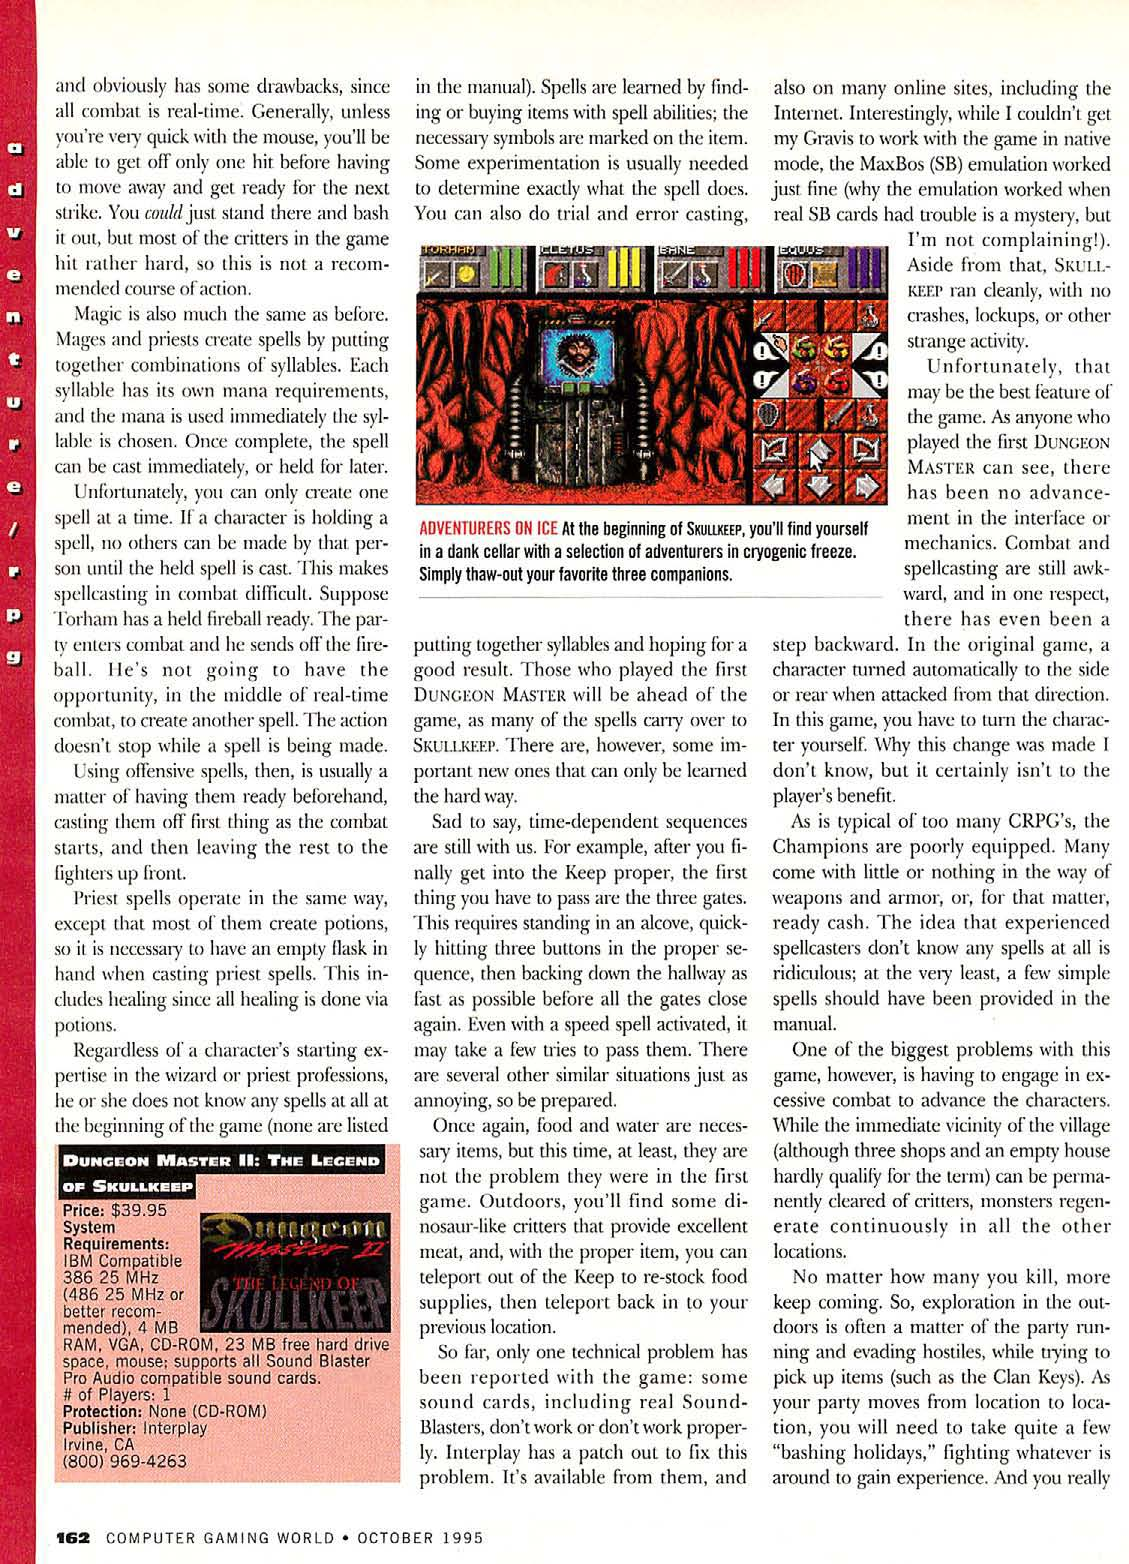 Dungeon Master II for PC Review published in American magazine 'Computer Gaming World', Issue #135 October 1995, Page 162